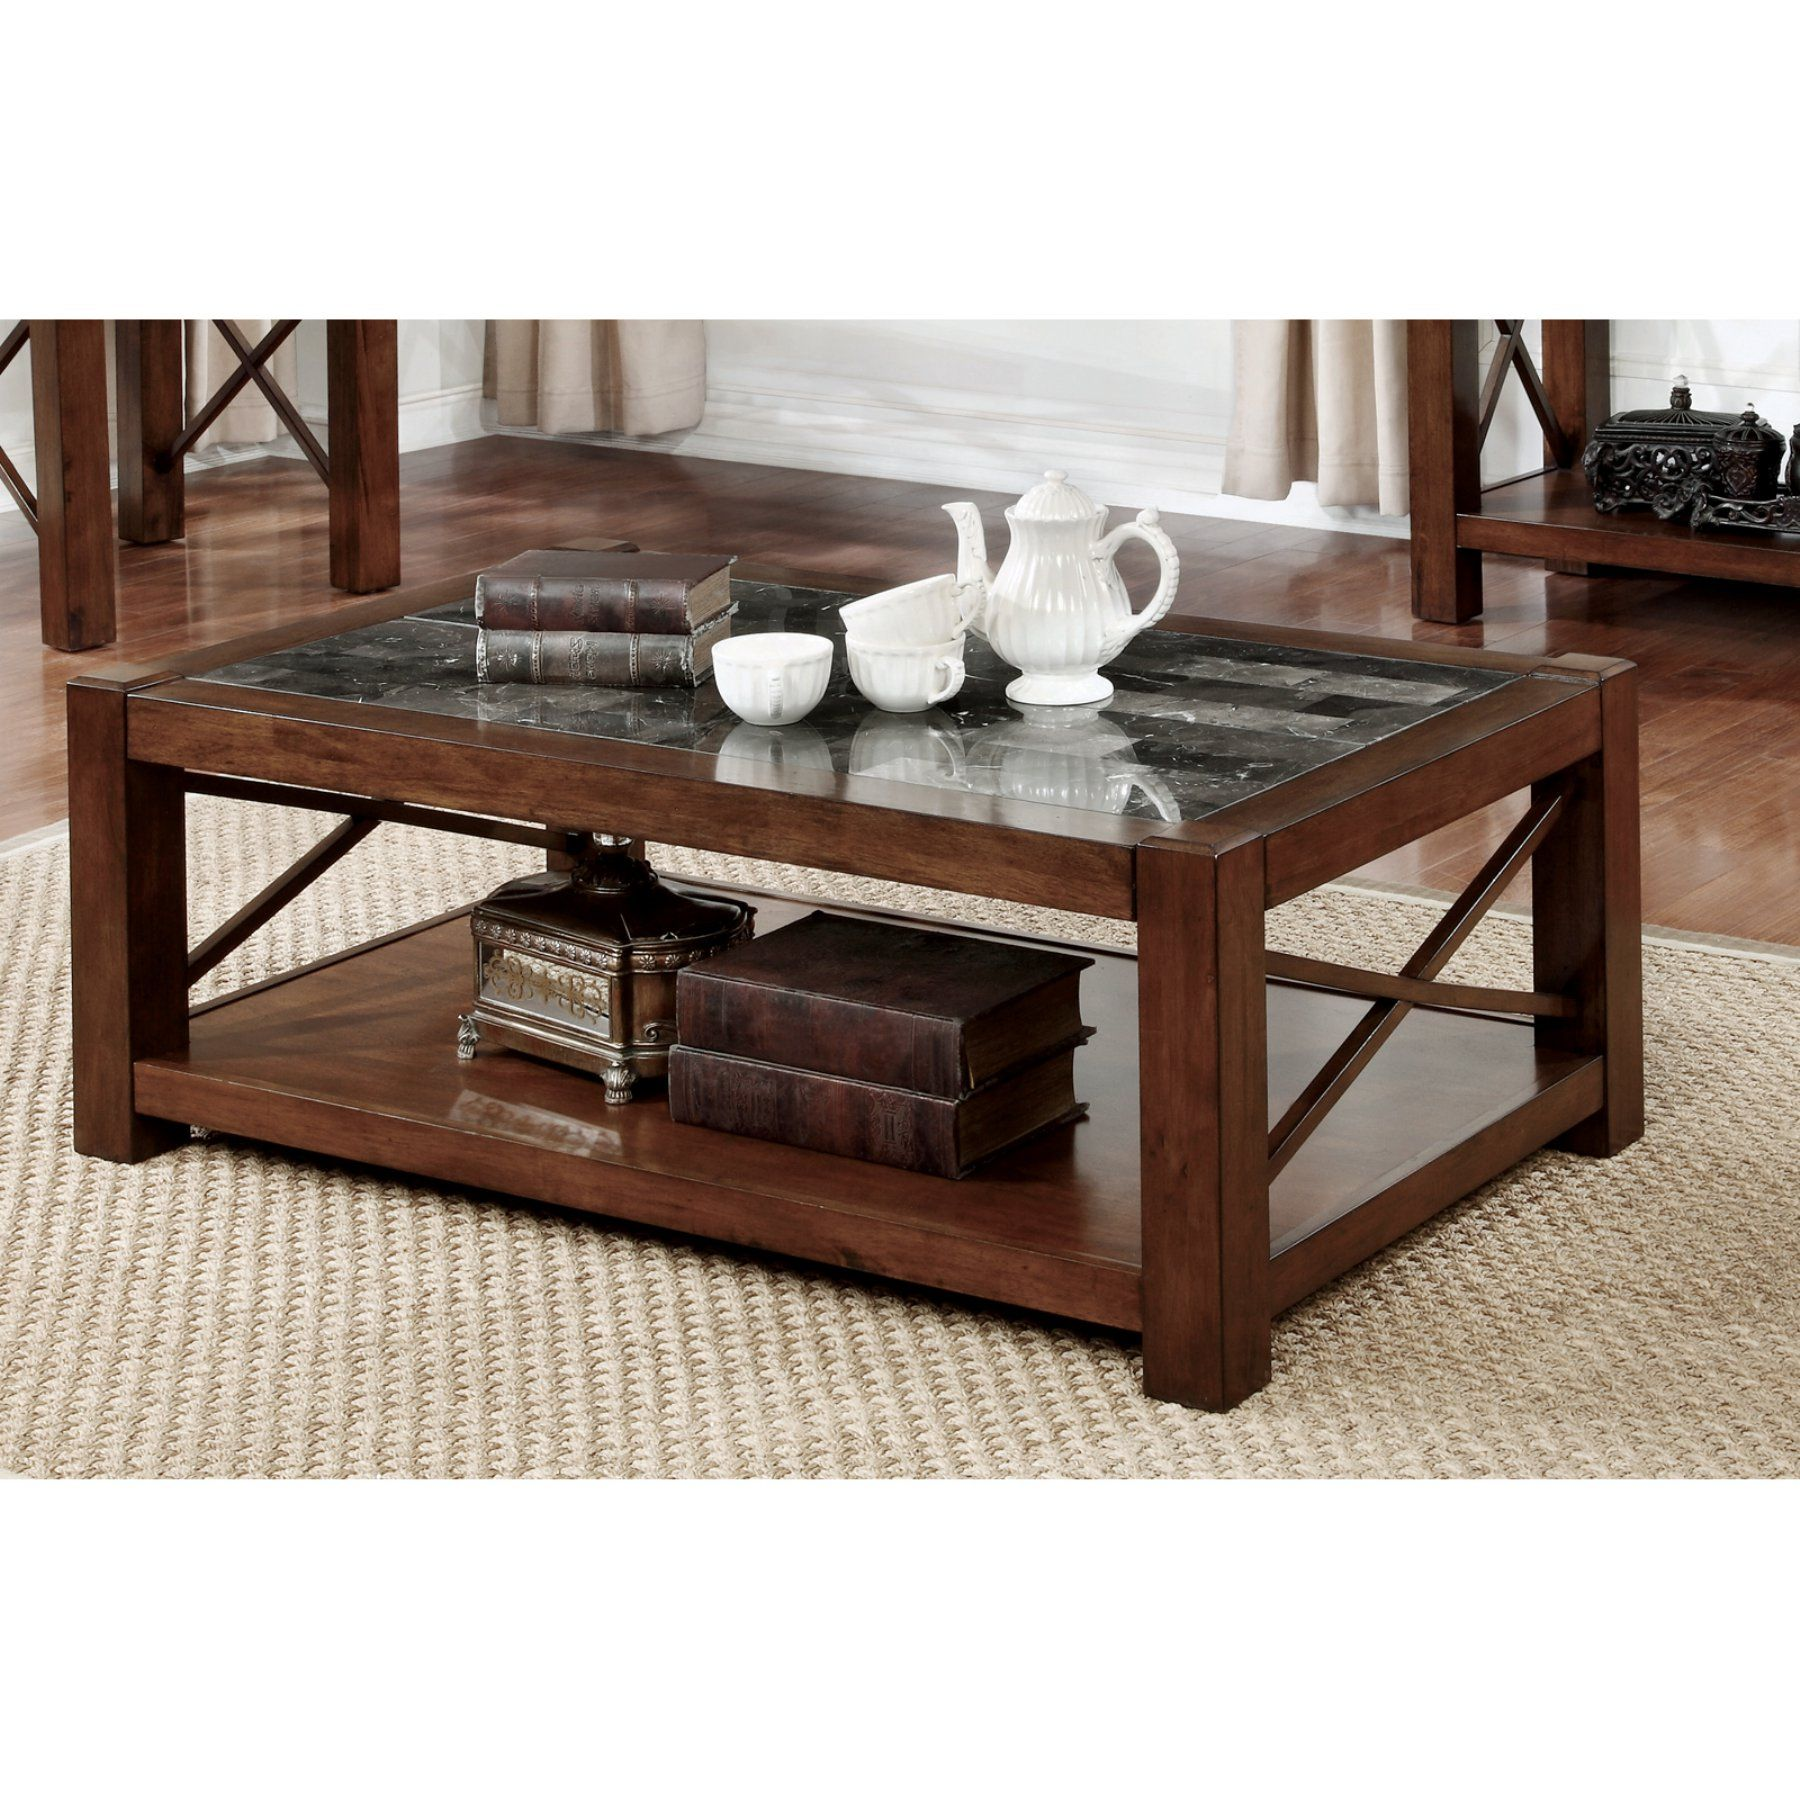 Furniture Of America Dolmin Transitional Style Genuine Marble Top Coffee Table Idf 4670c Coffee Table Coffee Table With Storage Marble Top Coffee Table [ 1800 x 1800 Pixel ]